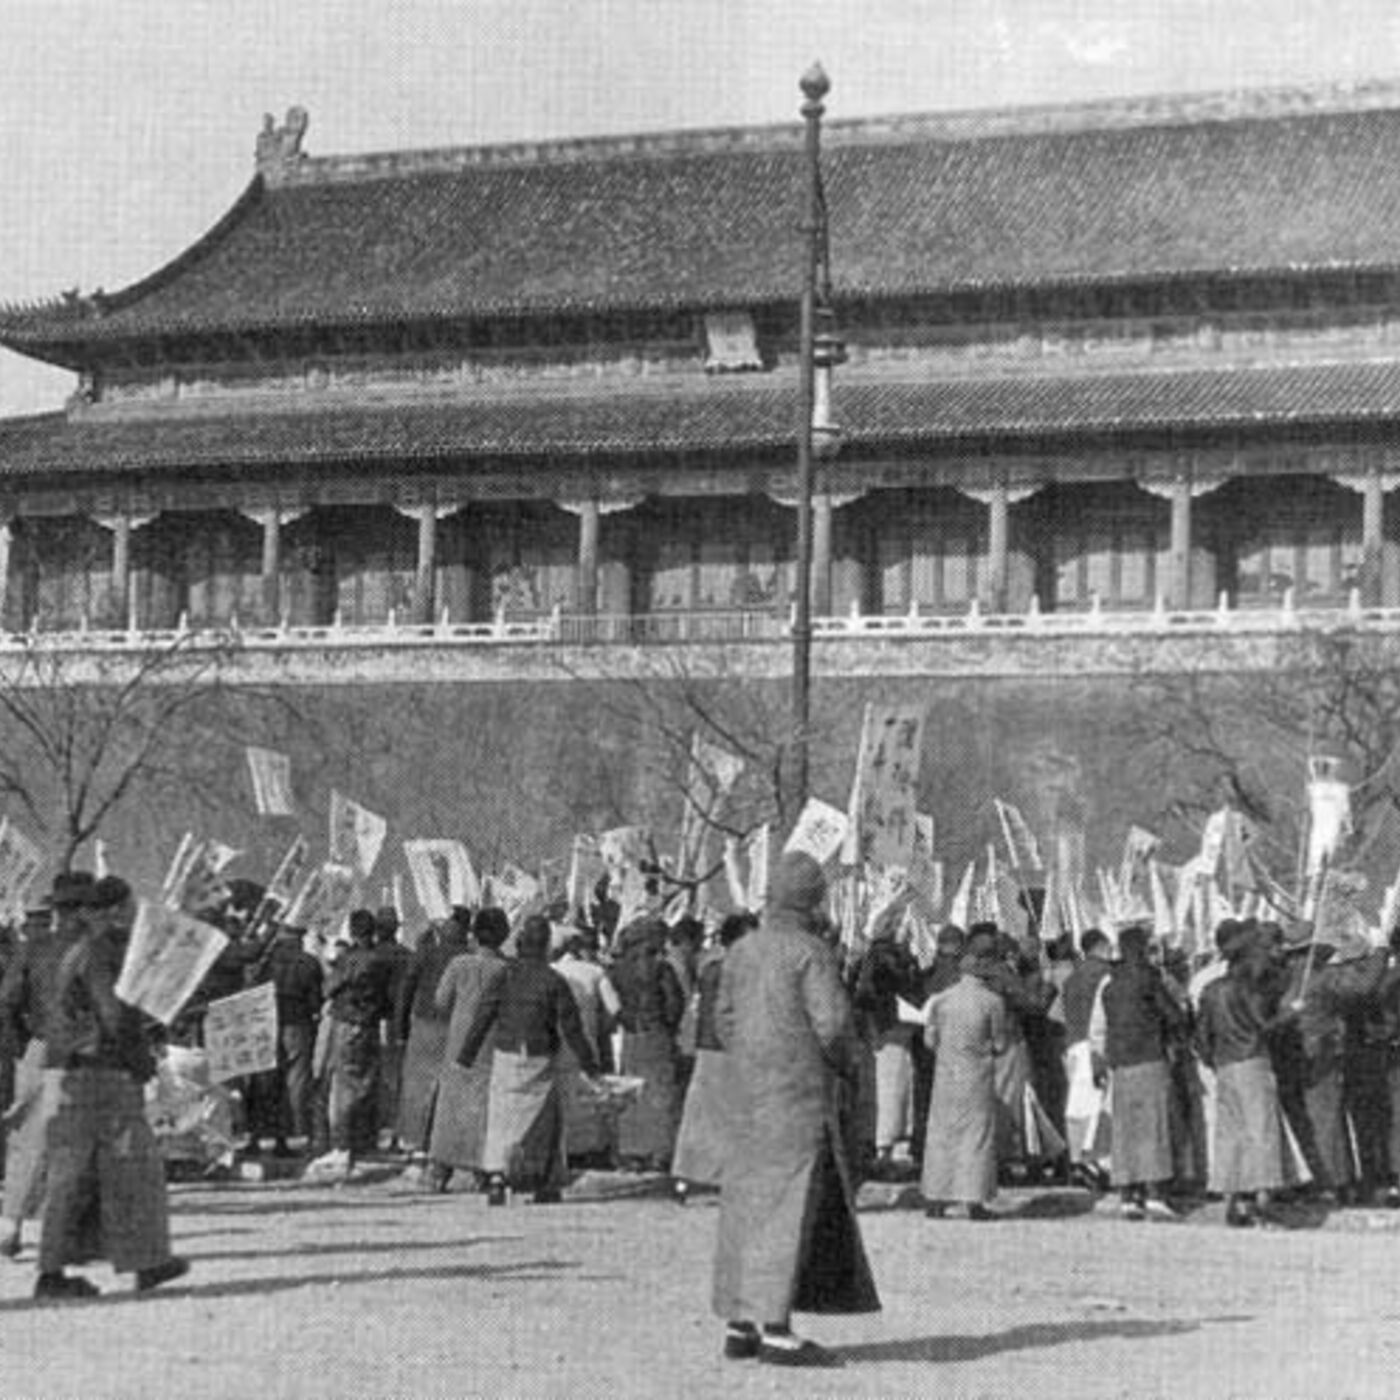 Liberals Becoming Marxists: The New Culture and May 4th Movements (1915-1919)